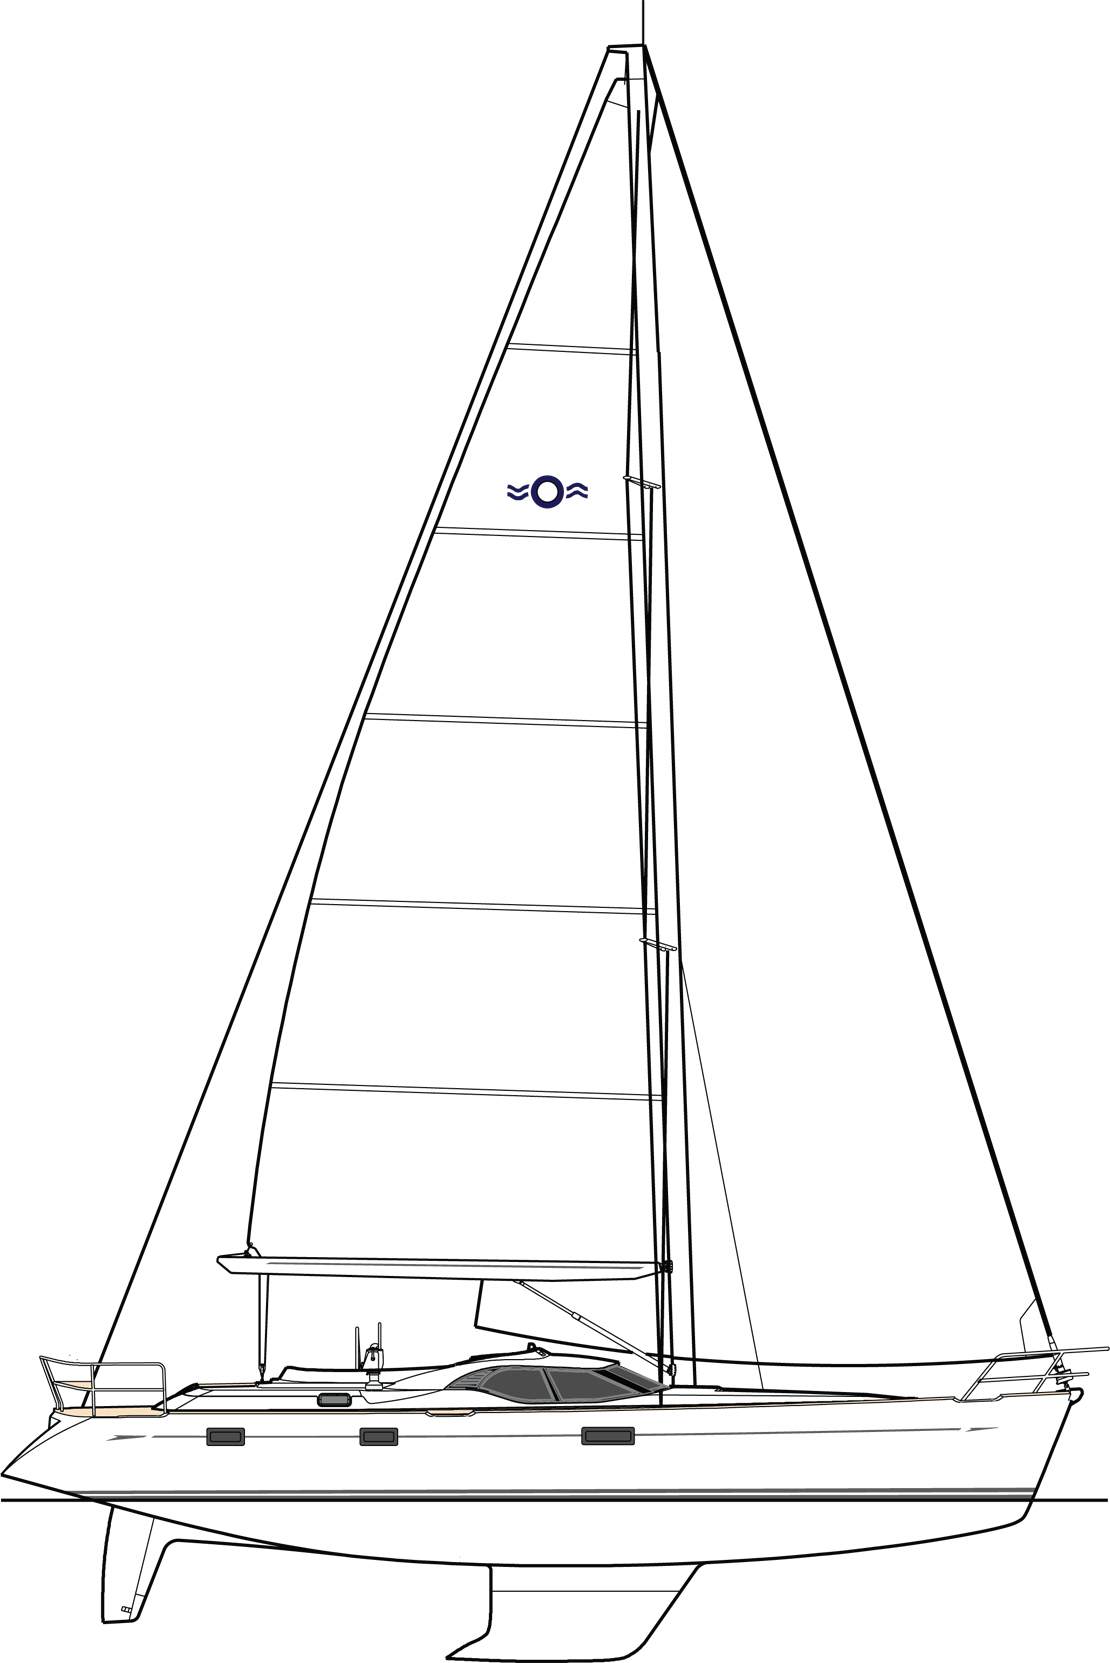 Oyster Marine 475 - oysteryachts-yachts-475_sail_plan.jpg